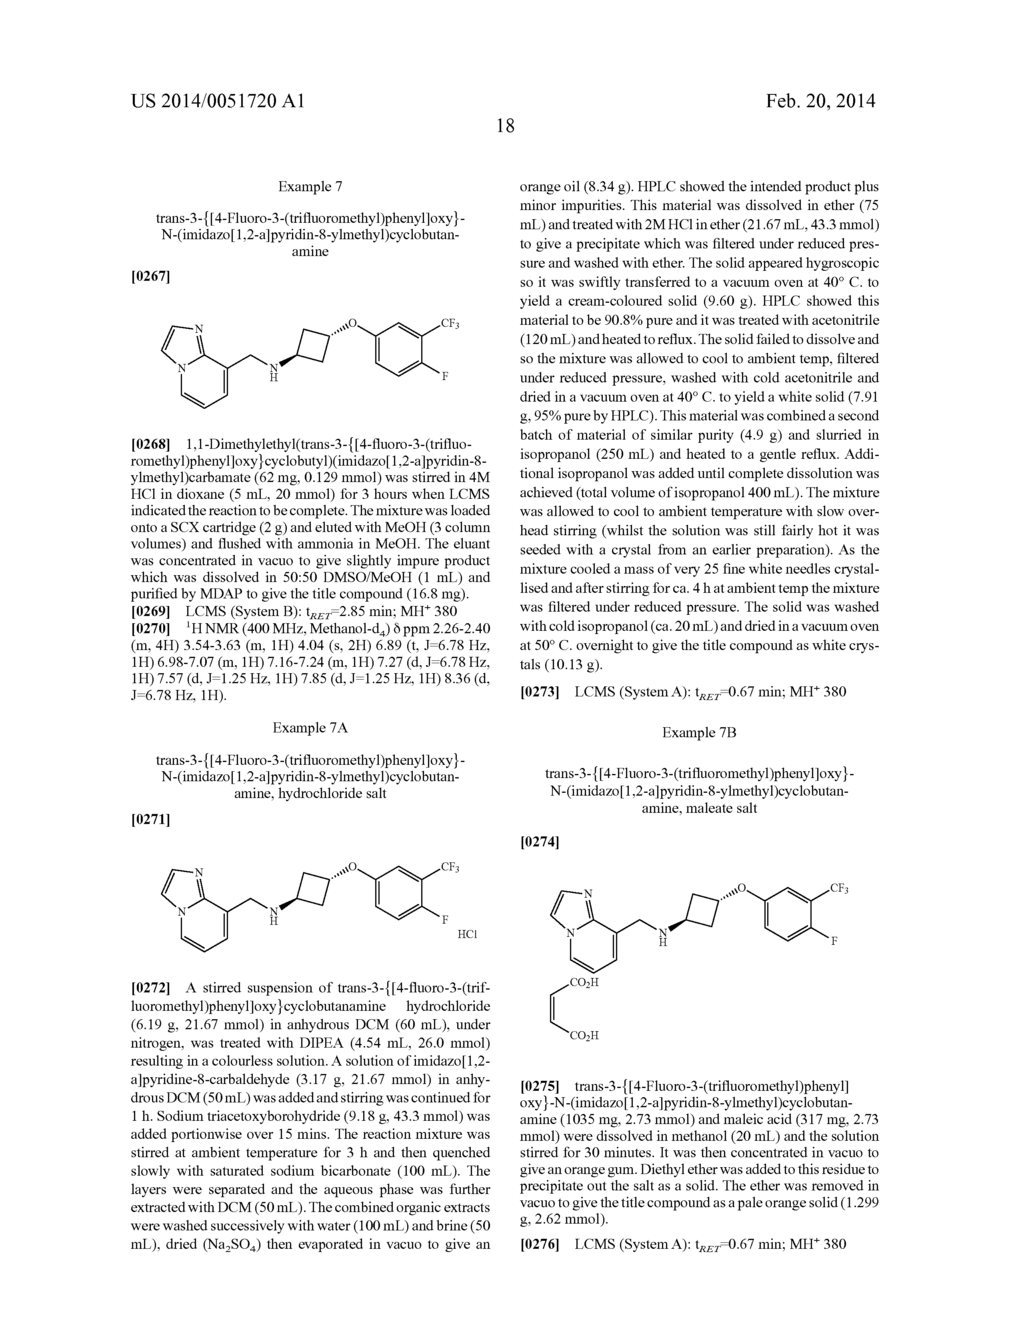 N-Cyclobutyl - Imidazopyridine - Methylamine As TRPV1 Antagonists - diagram, schematic, and image 22